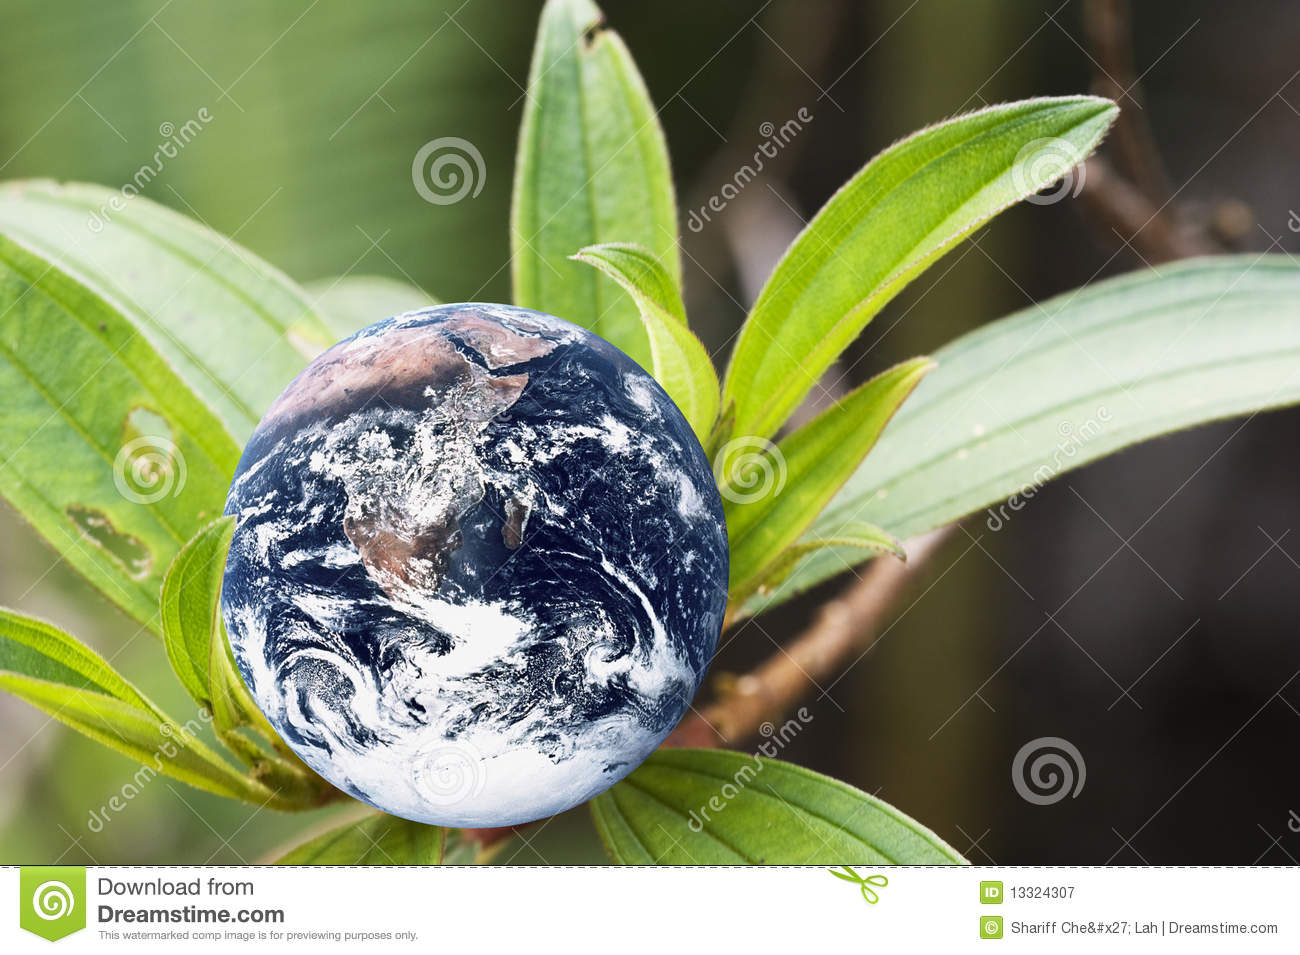 the earth as a living planet essay Free essay: did u know that our planet, earth  with the support of the sustainability and more quality ways of living, the earth  more about the earth essay.